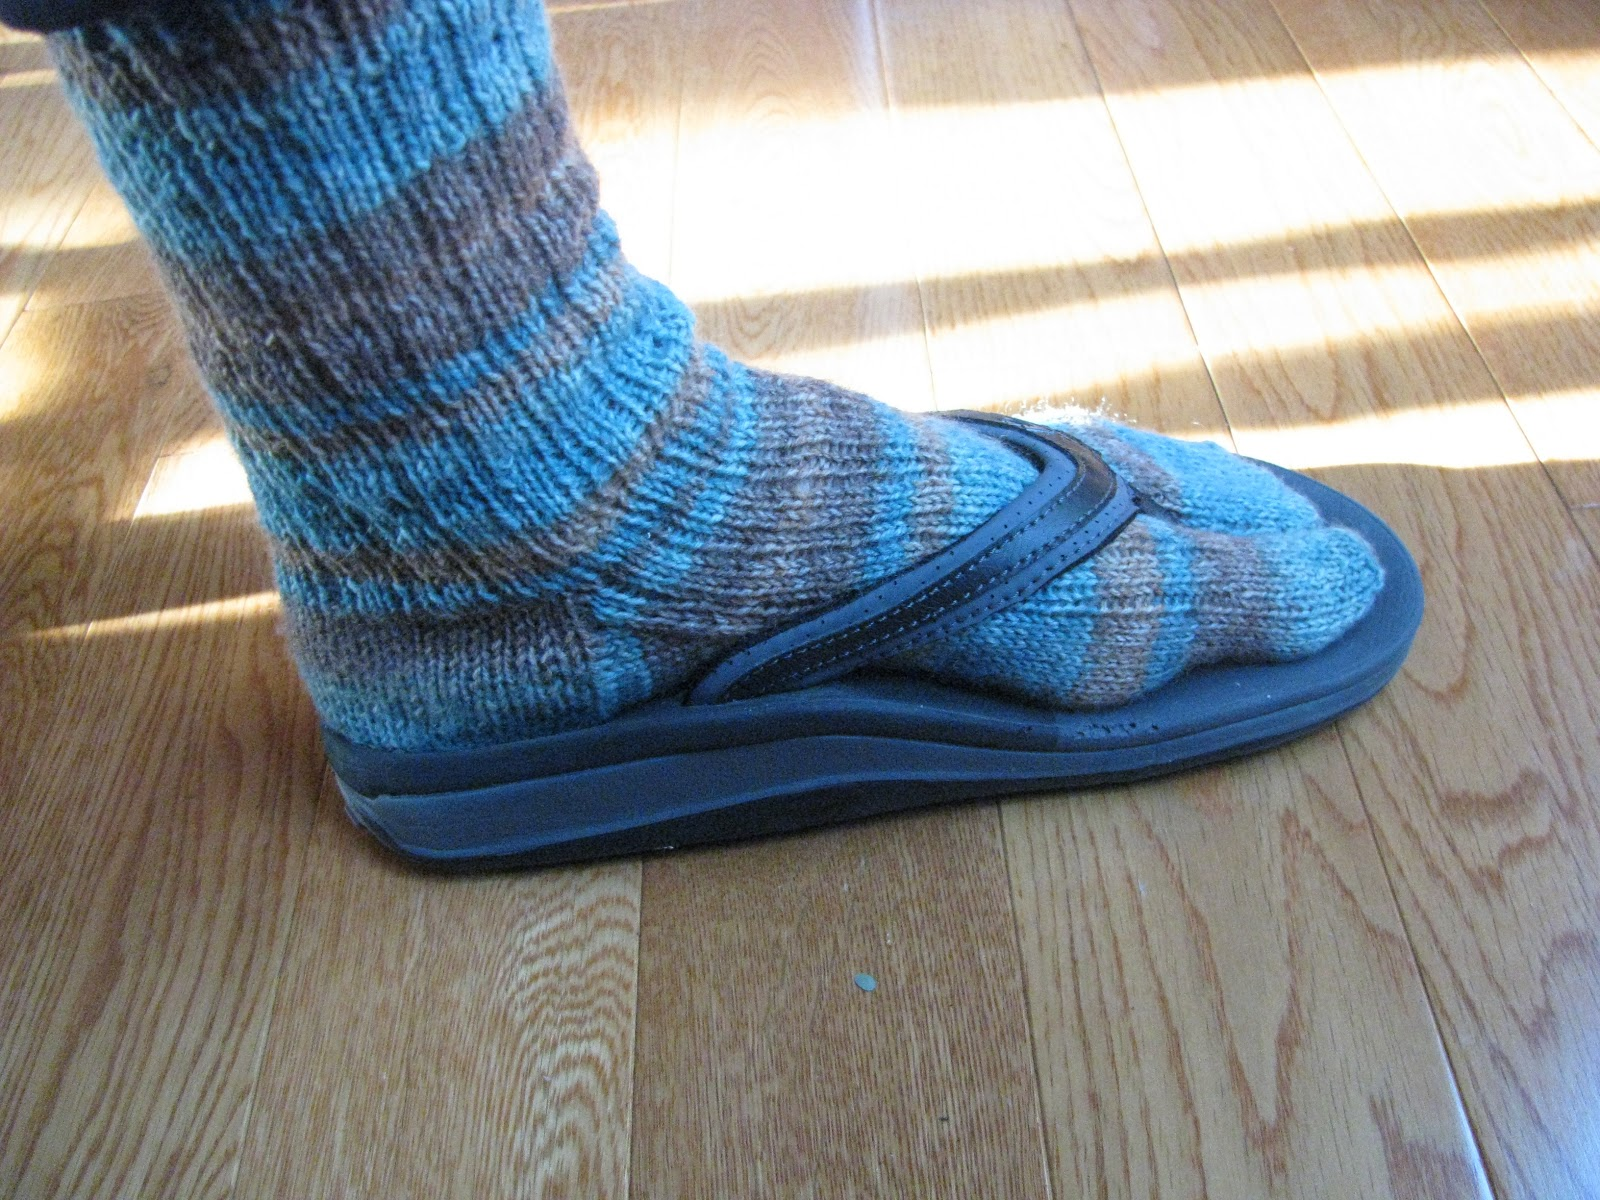 Chris knits in niagara winter flip flop socks this pattern fits adult women size 7 9 knit the foot an inch longer or shorter to adjust and add 4 or 8 stitches in the round for men bankloansurffo Image collections